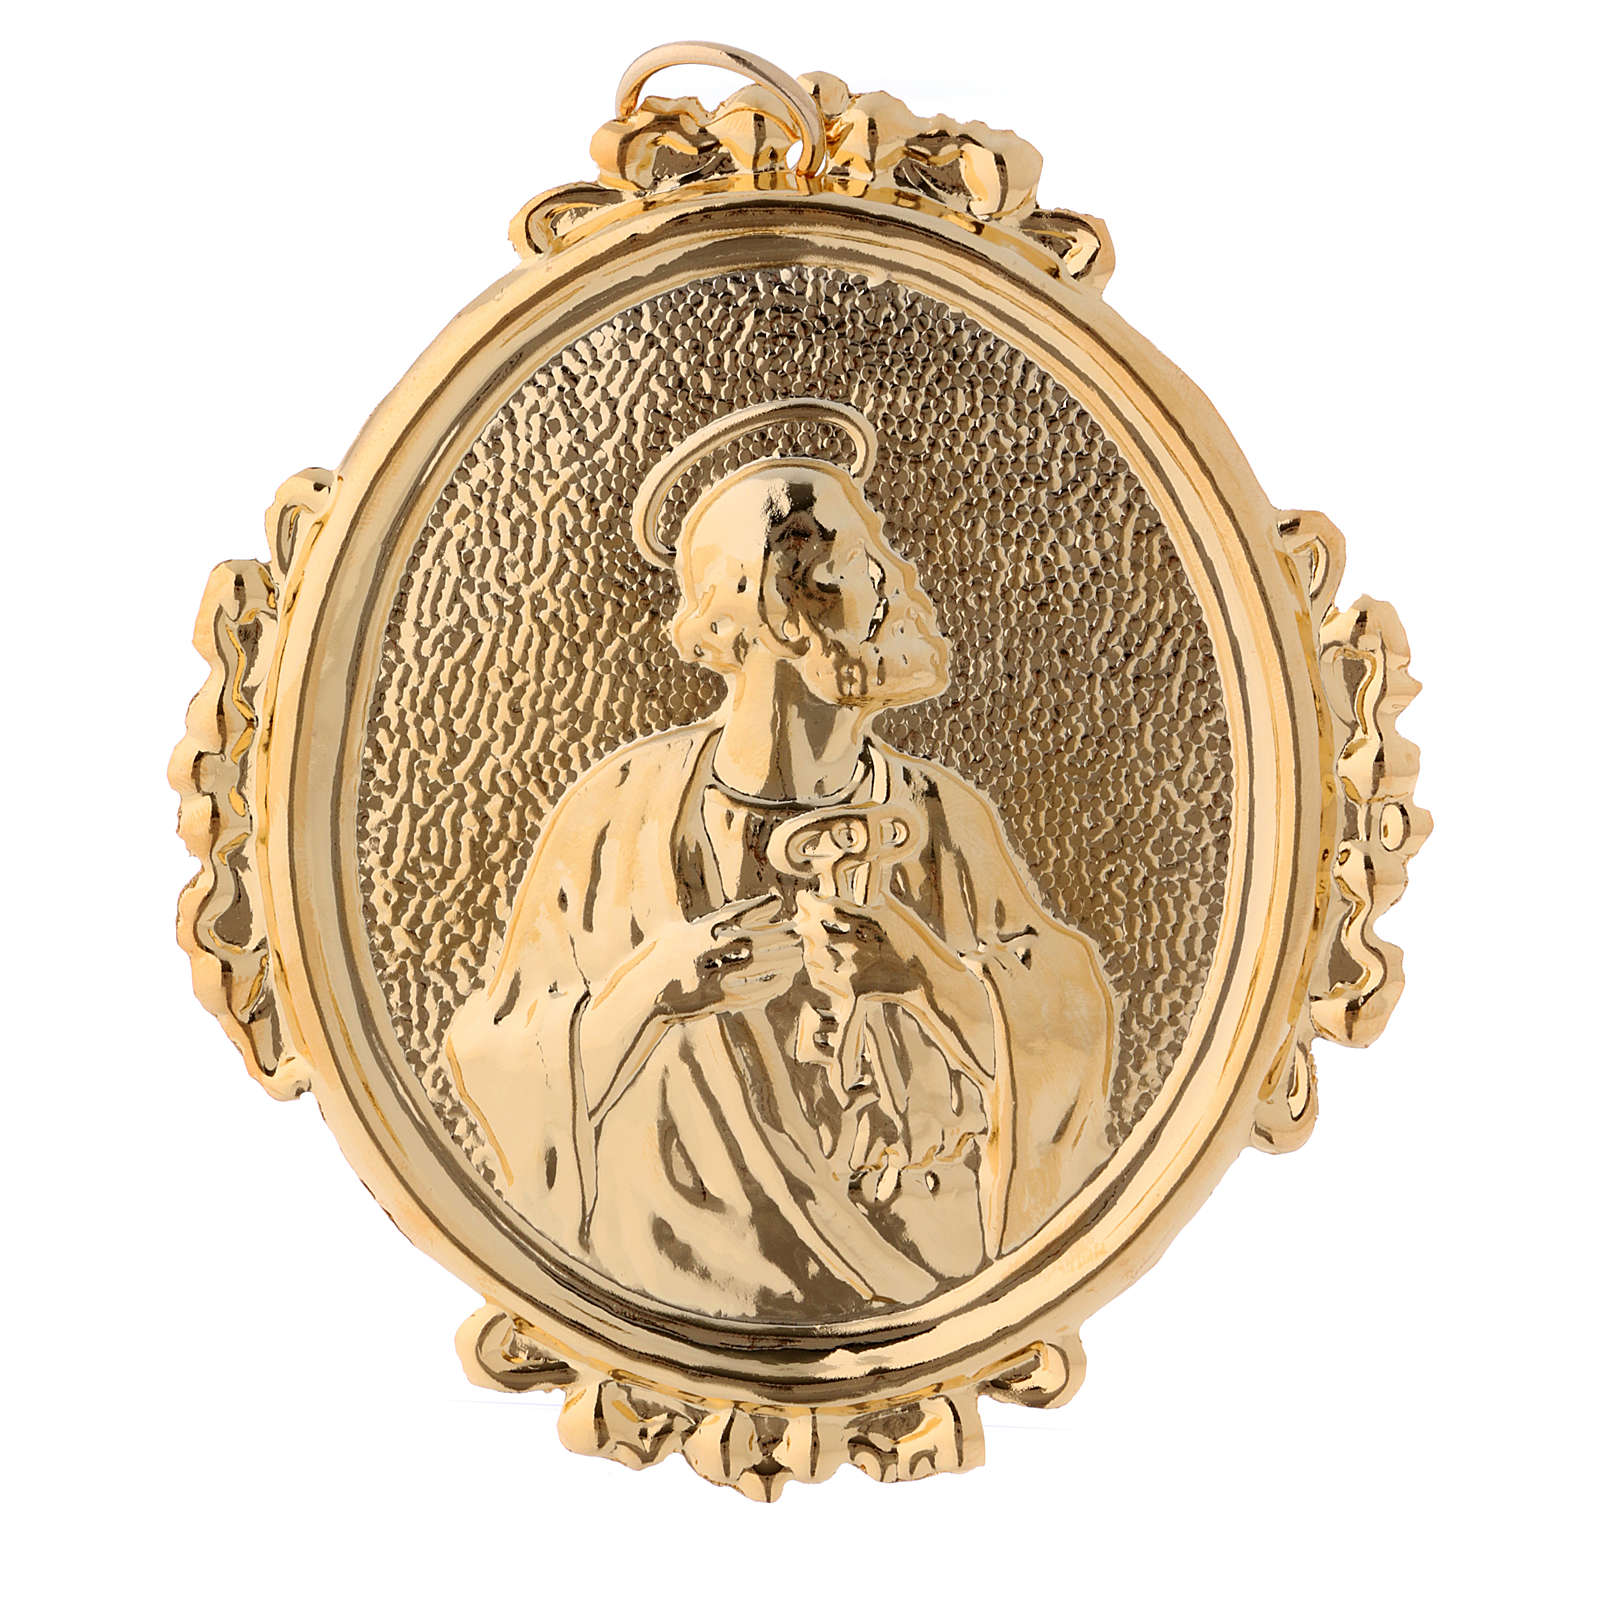 Confraternity Medal, Saint Peter in brass 3